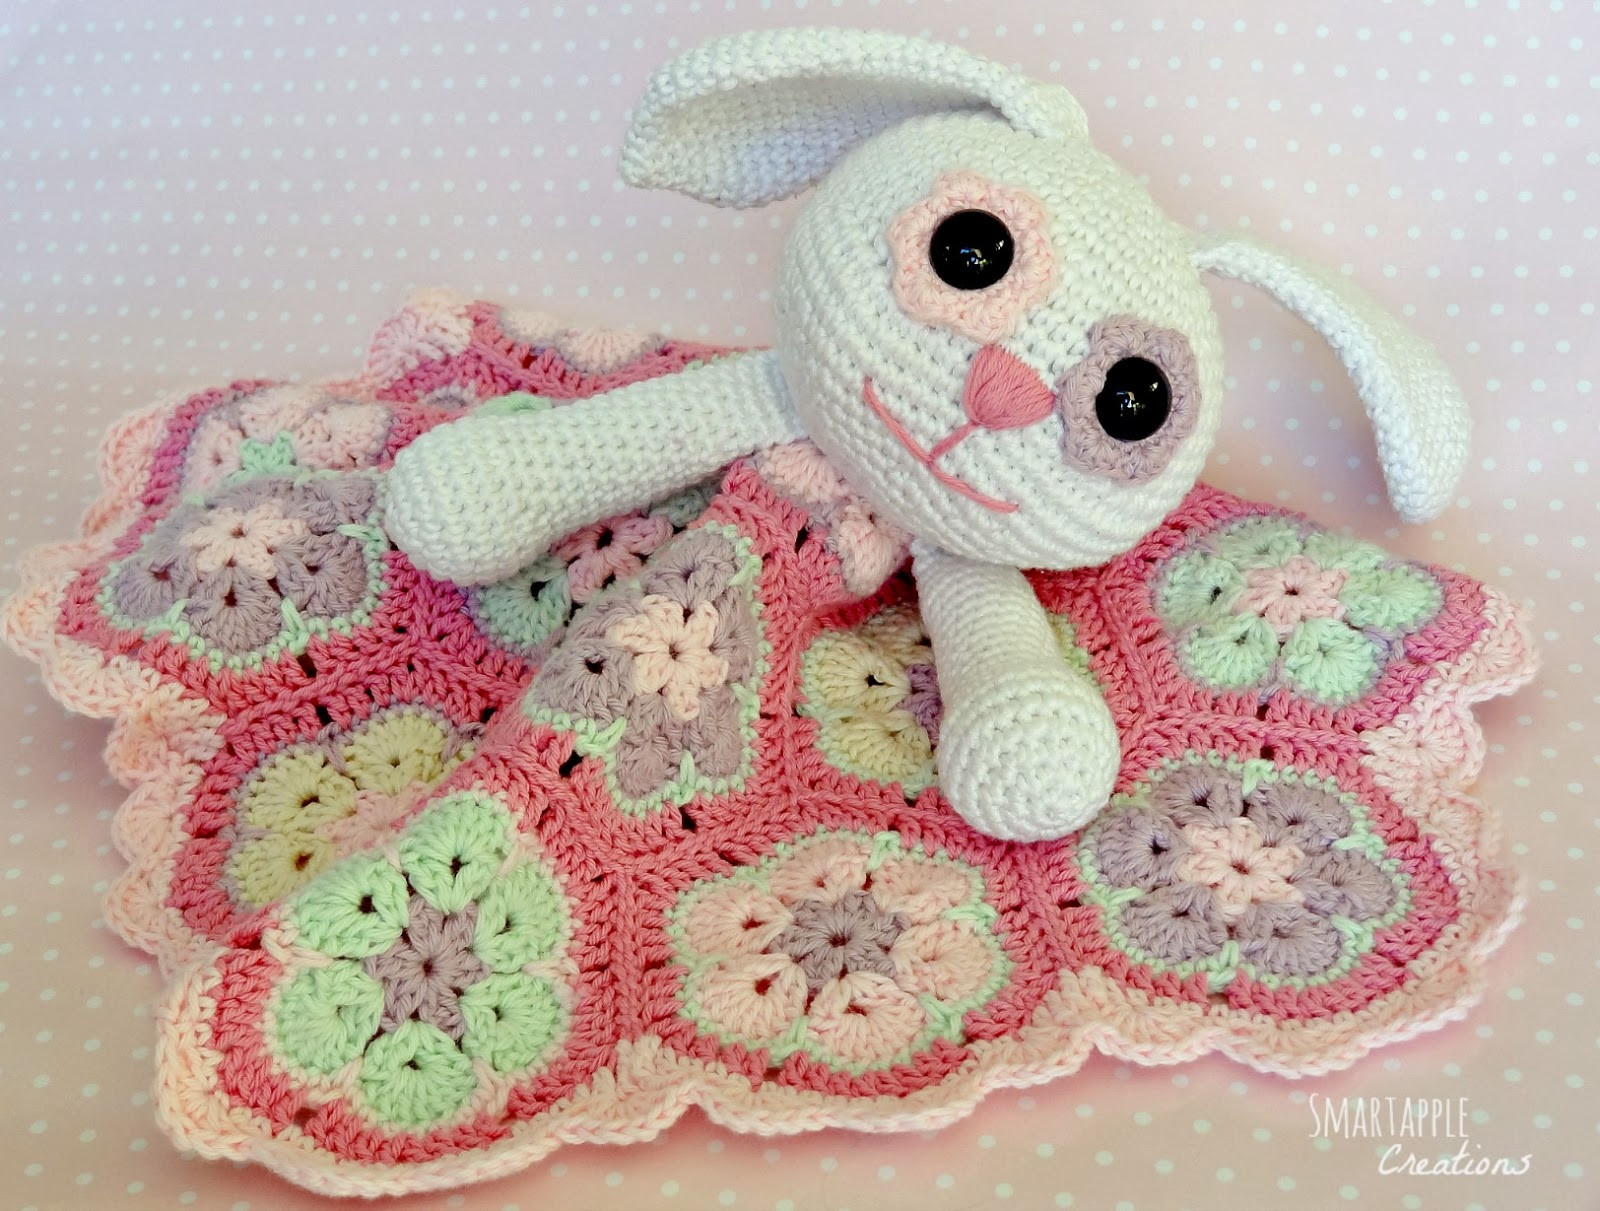 Awesome Smartapple Creations Amigurumi and Crochet Crochet Crochet Lovey Blanket Of Attractive 46 Pics Crochet Lovey Blanket